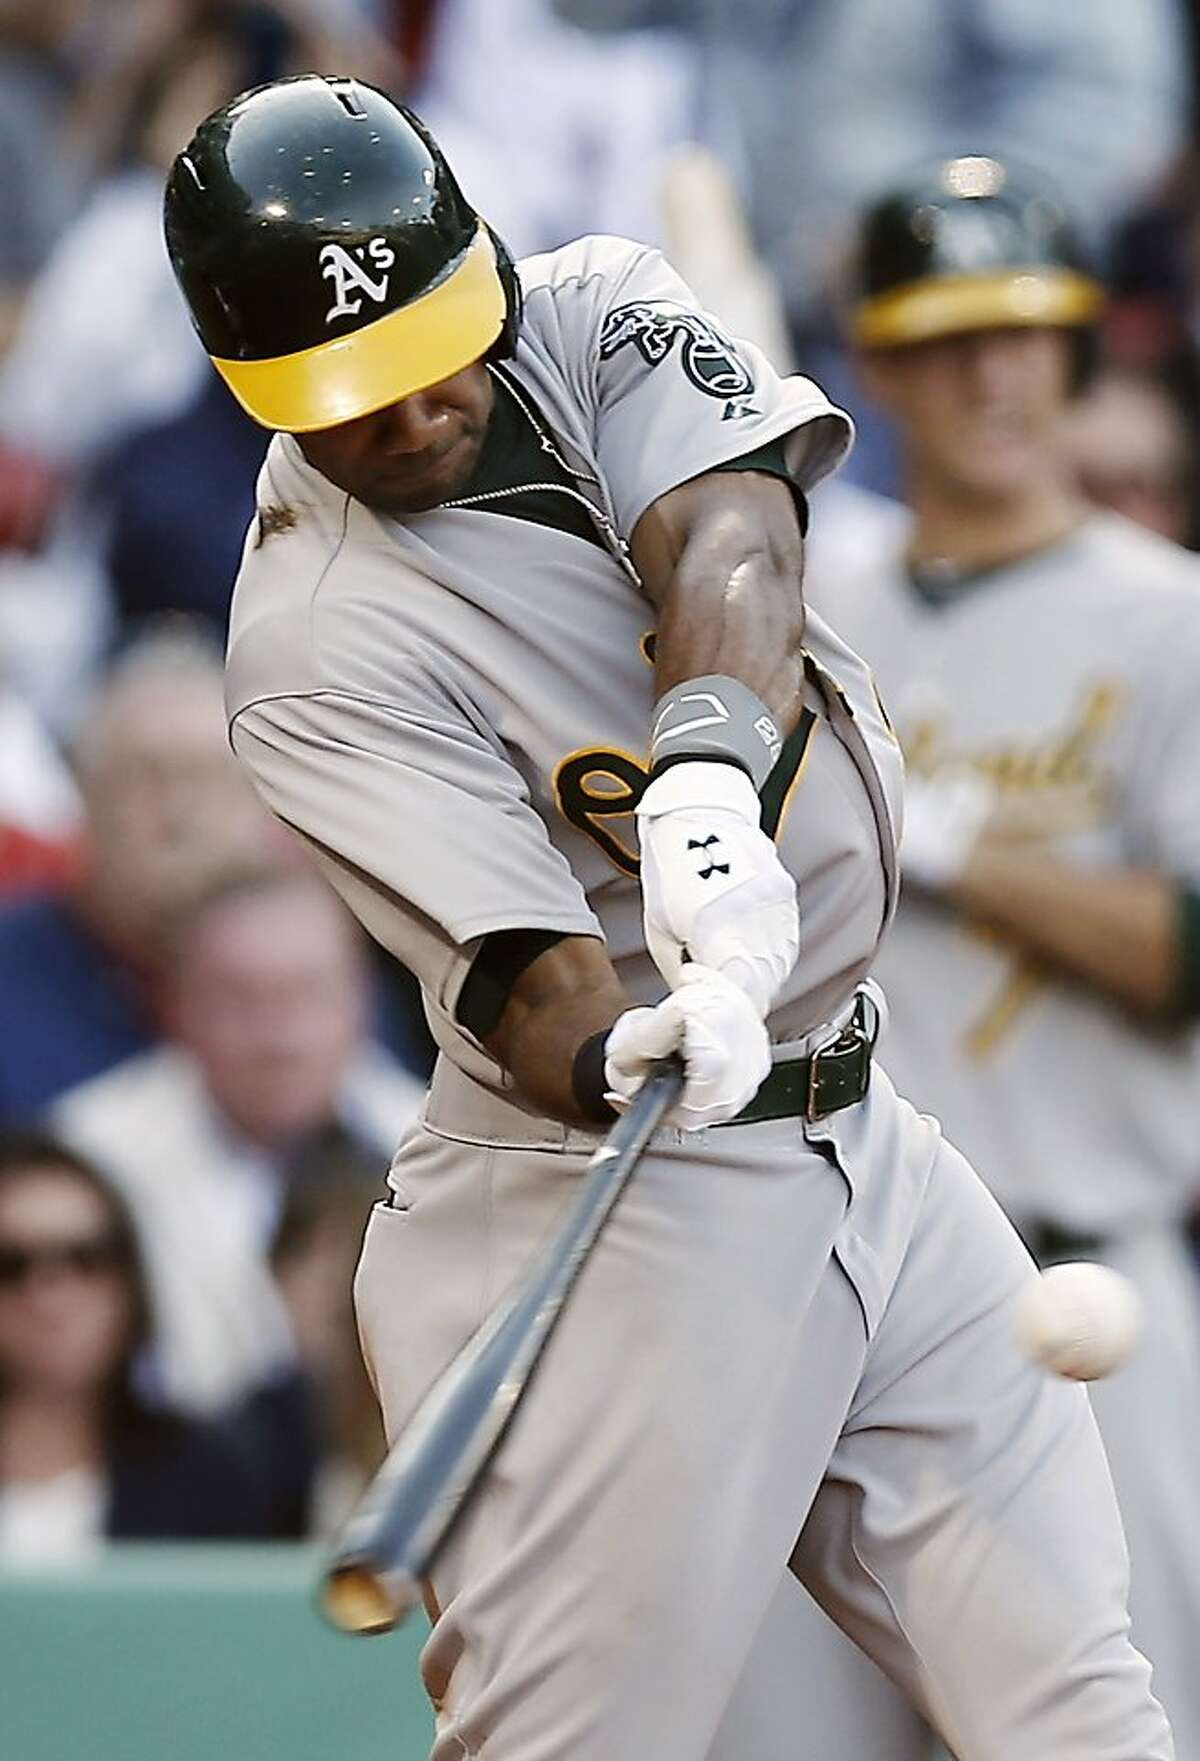 Oakland Athletics' Chris Young hits a three-run home run against the Boston Red Sox during the third inning of a baseball game at Fenway Park in Boston, Wednesday, April 24, 2013. (AP Photo/Winslow Townson)